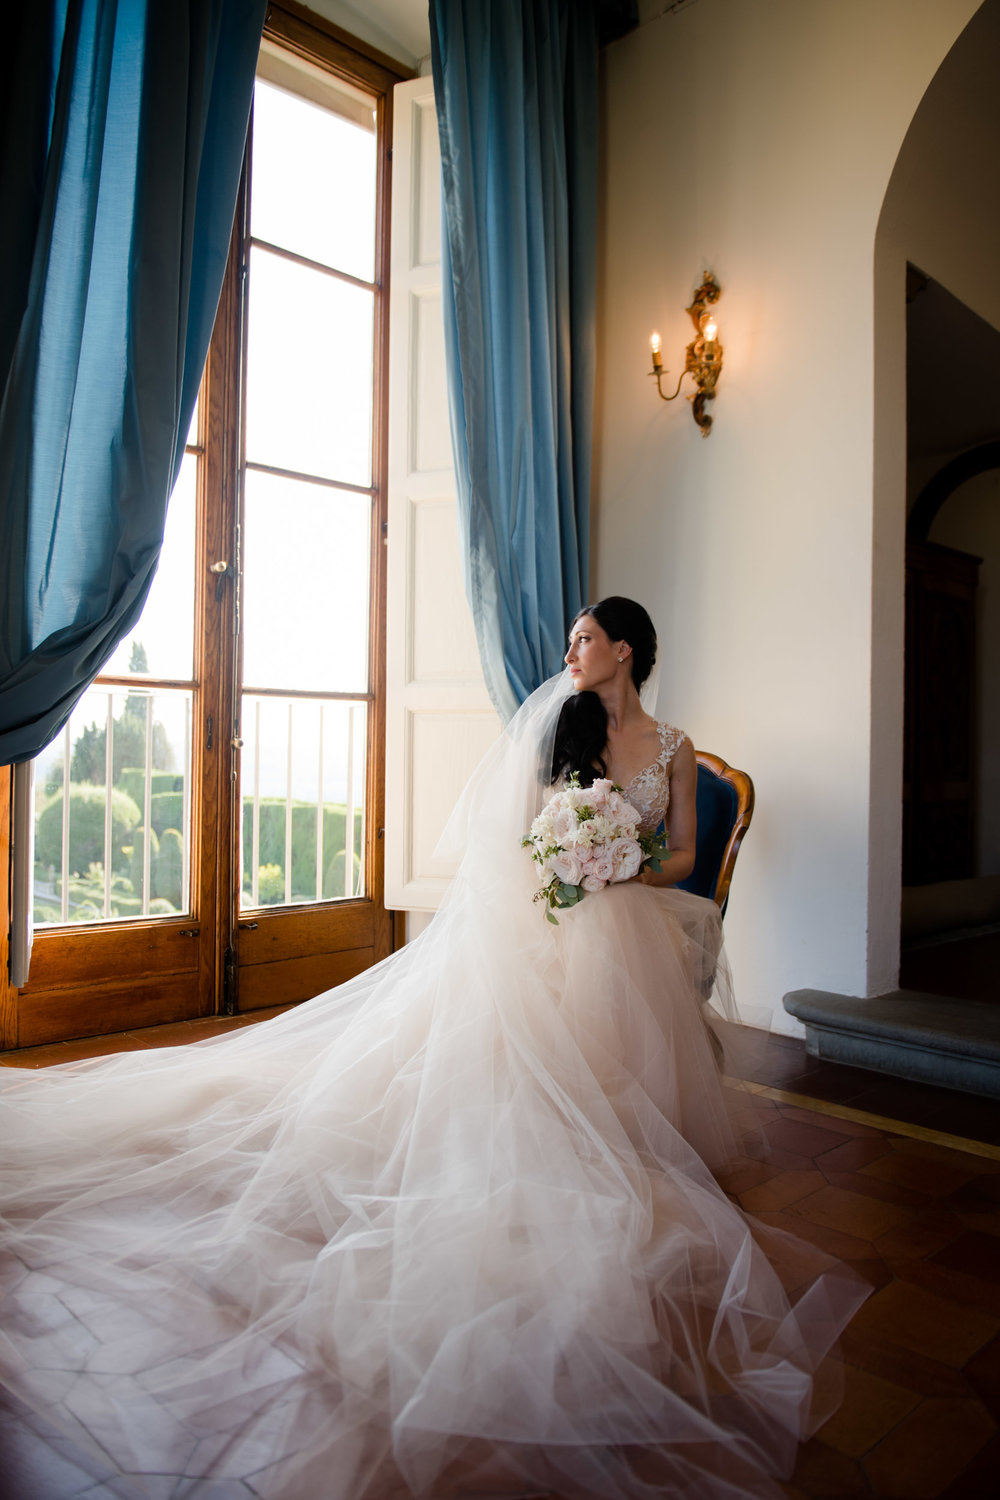 Bridal photos in Tuscany at Villa Gamberaia